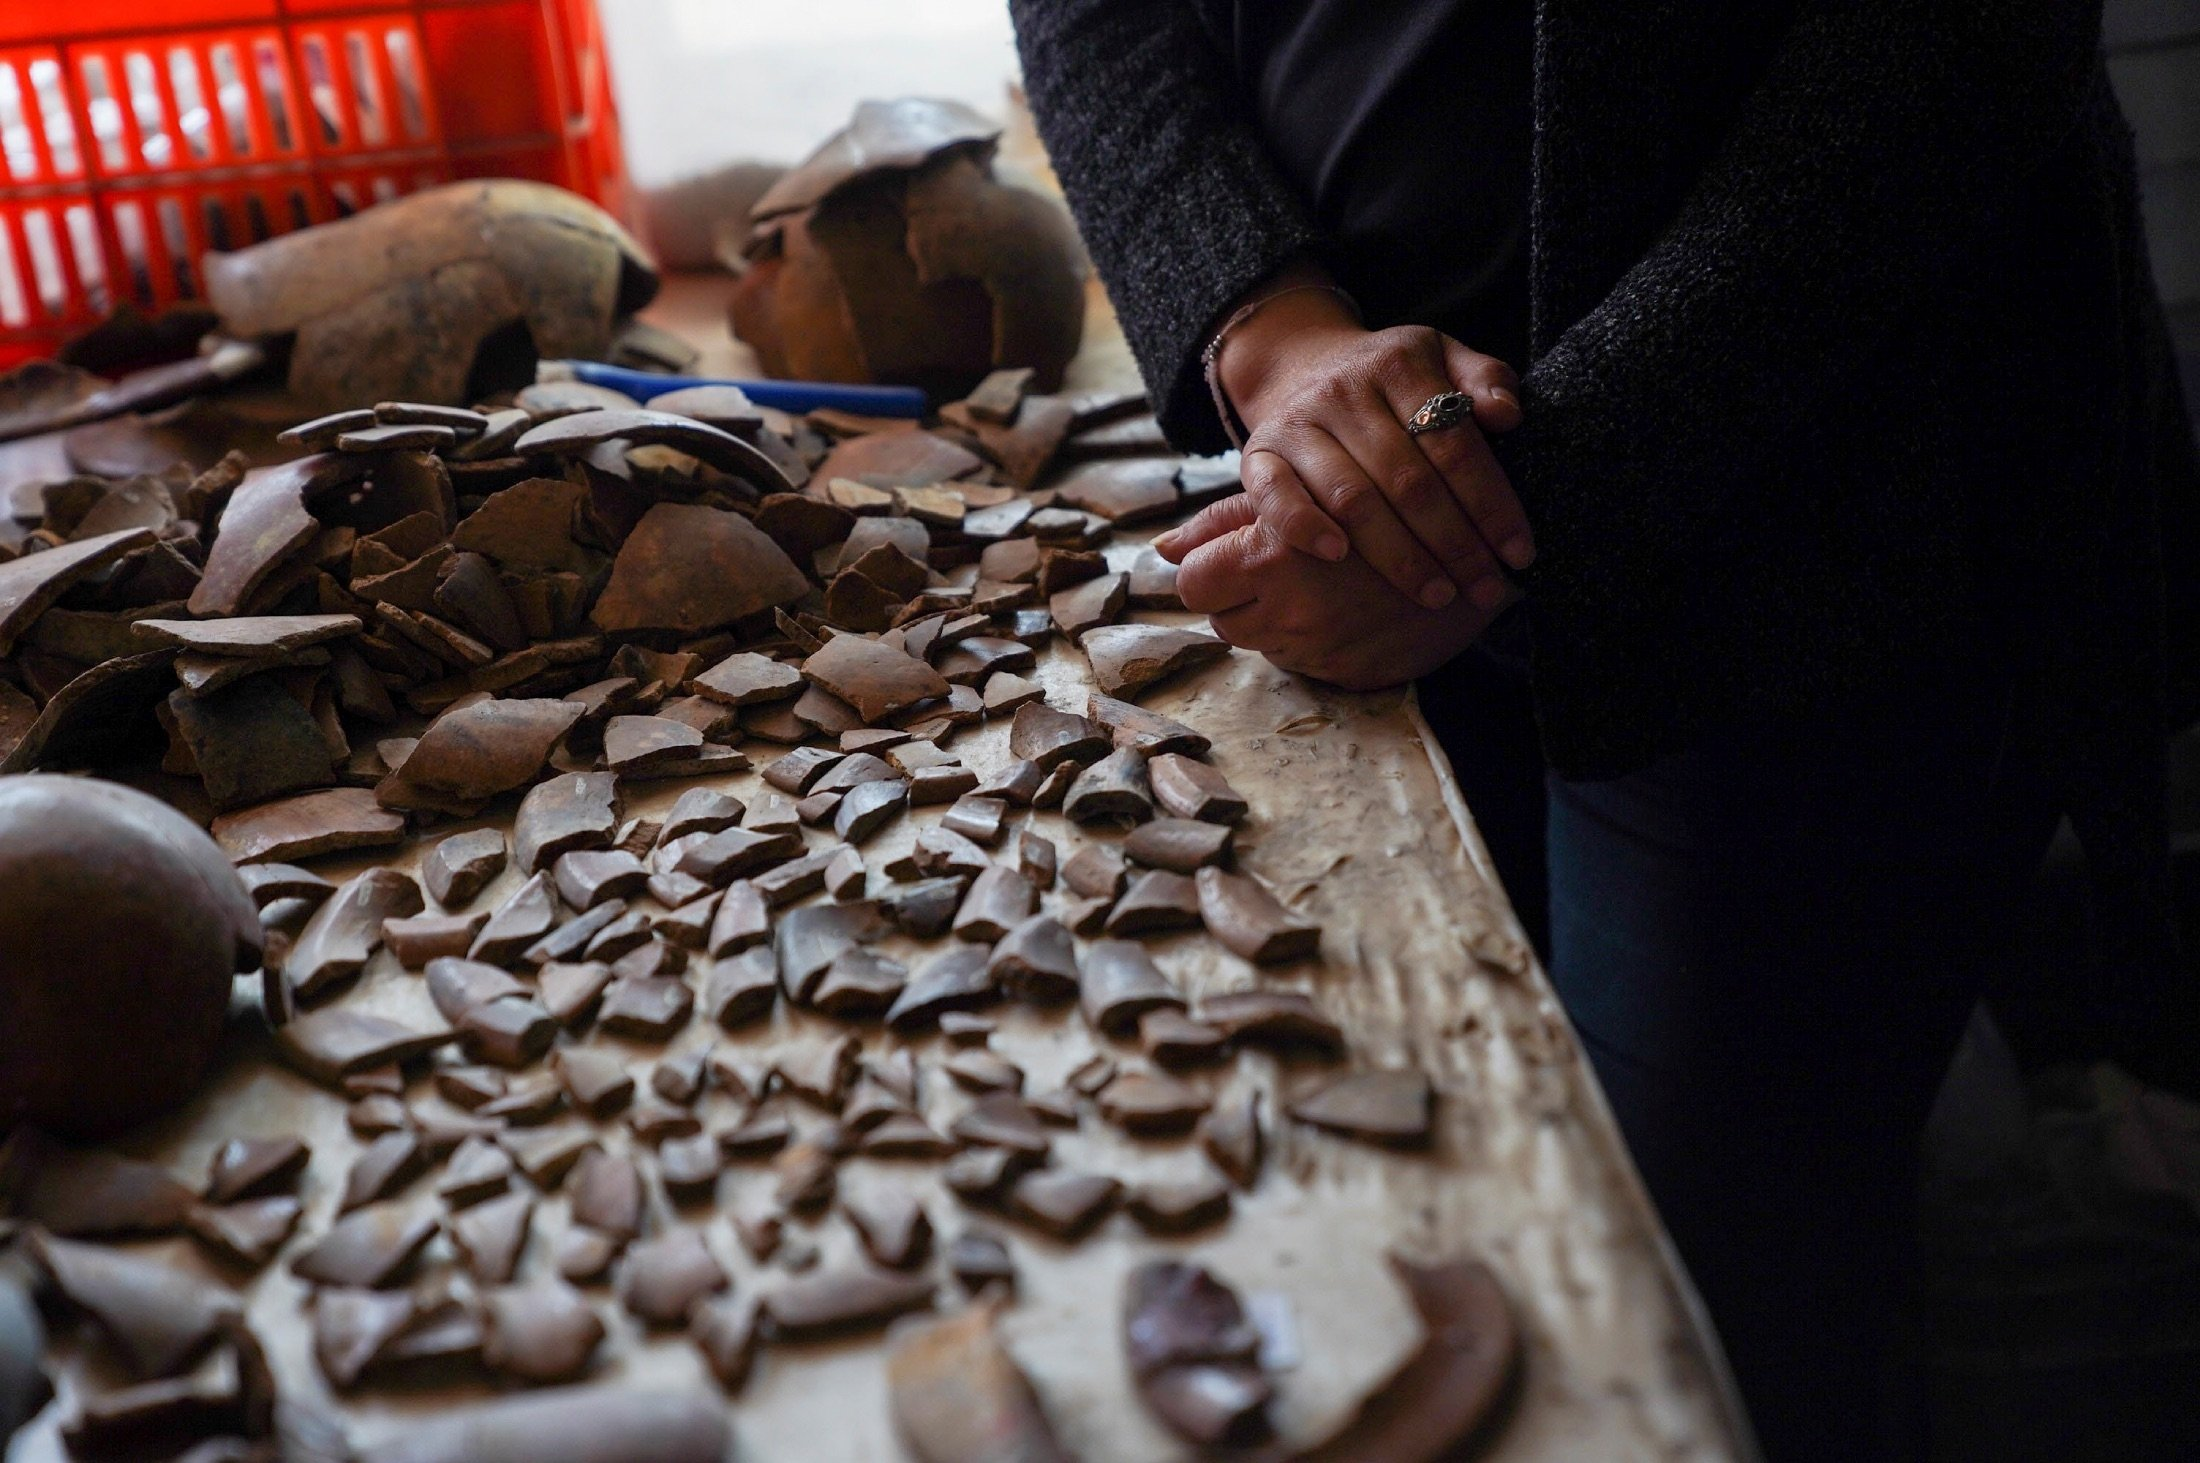 A worker arranges pieces of objects found inside a 2,000-year-old tunnel built under the ornate Feathered Serpent Pyramid, in the ruins of Teotihuacan, in San Juan Teotihuacan, Mexico, Aug. 12, 2021. (Reuters Photo)